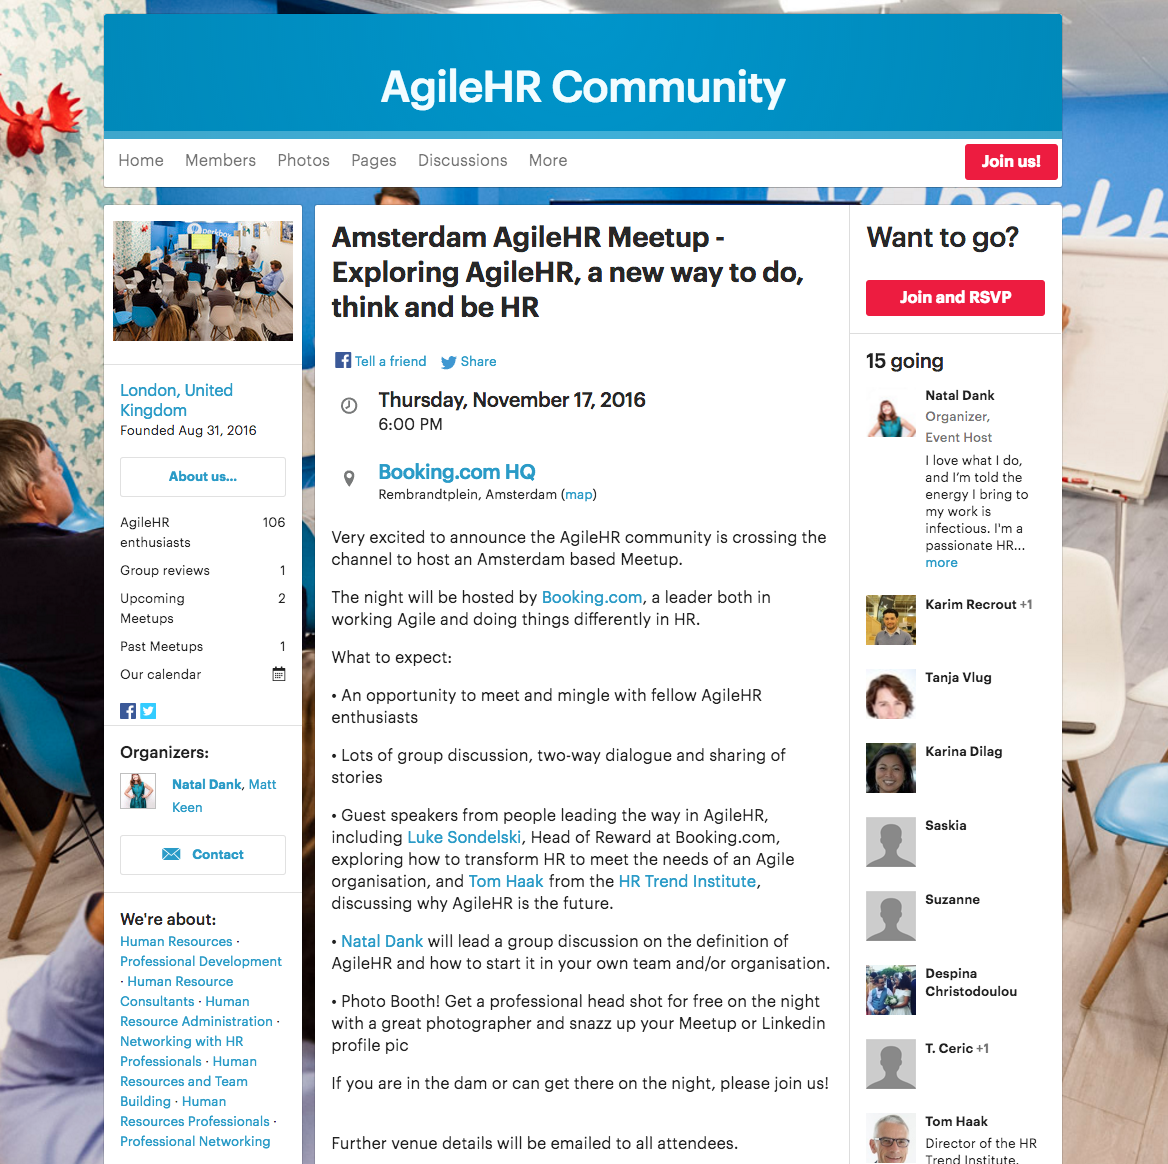 Agile HR Community